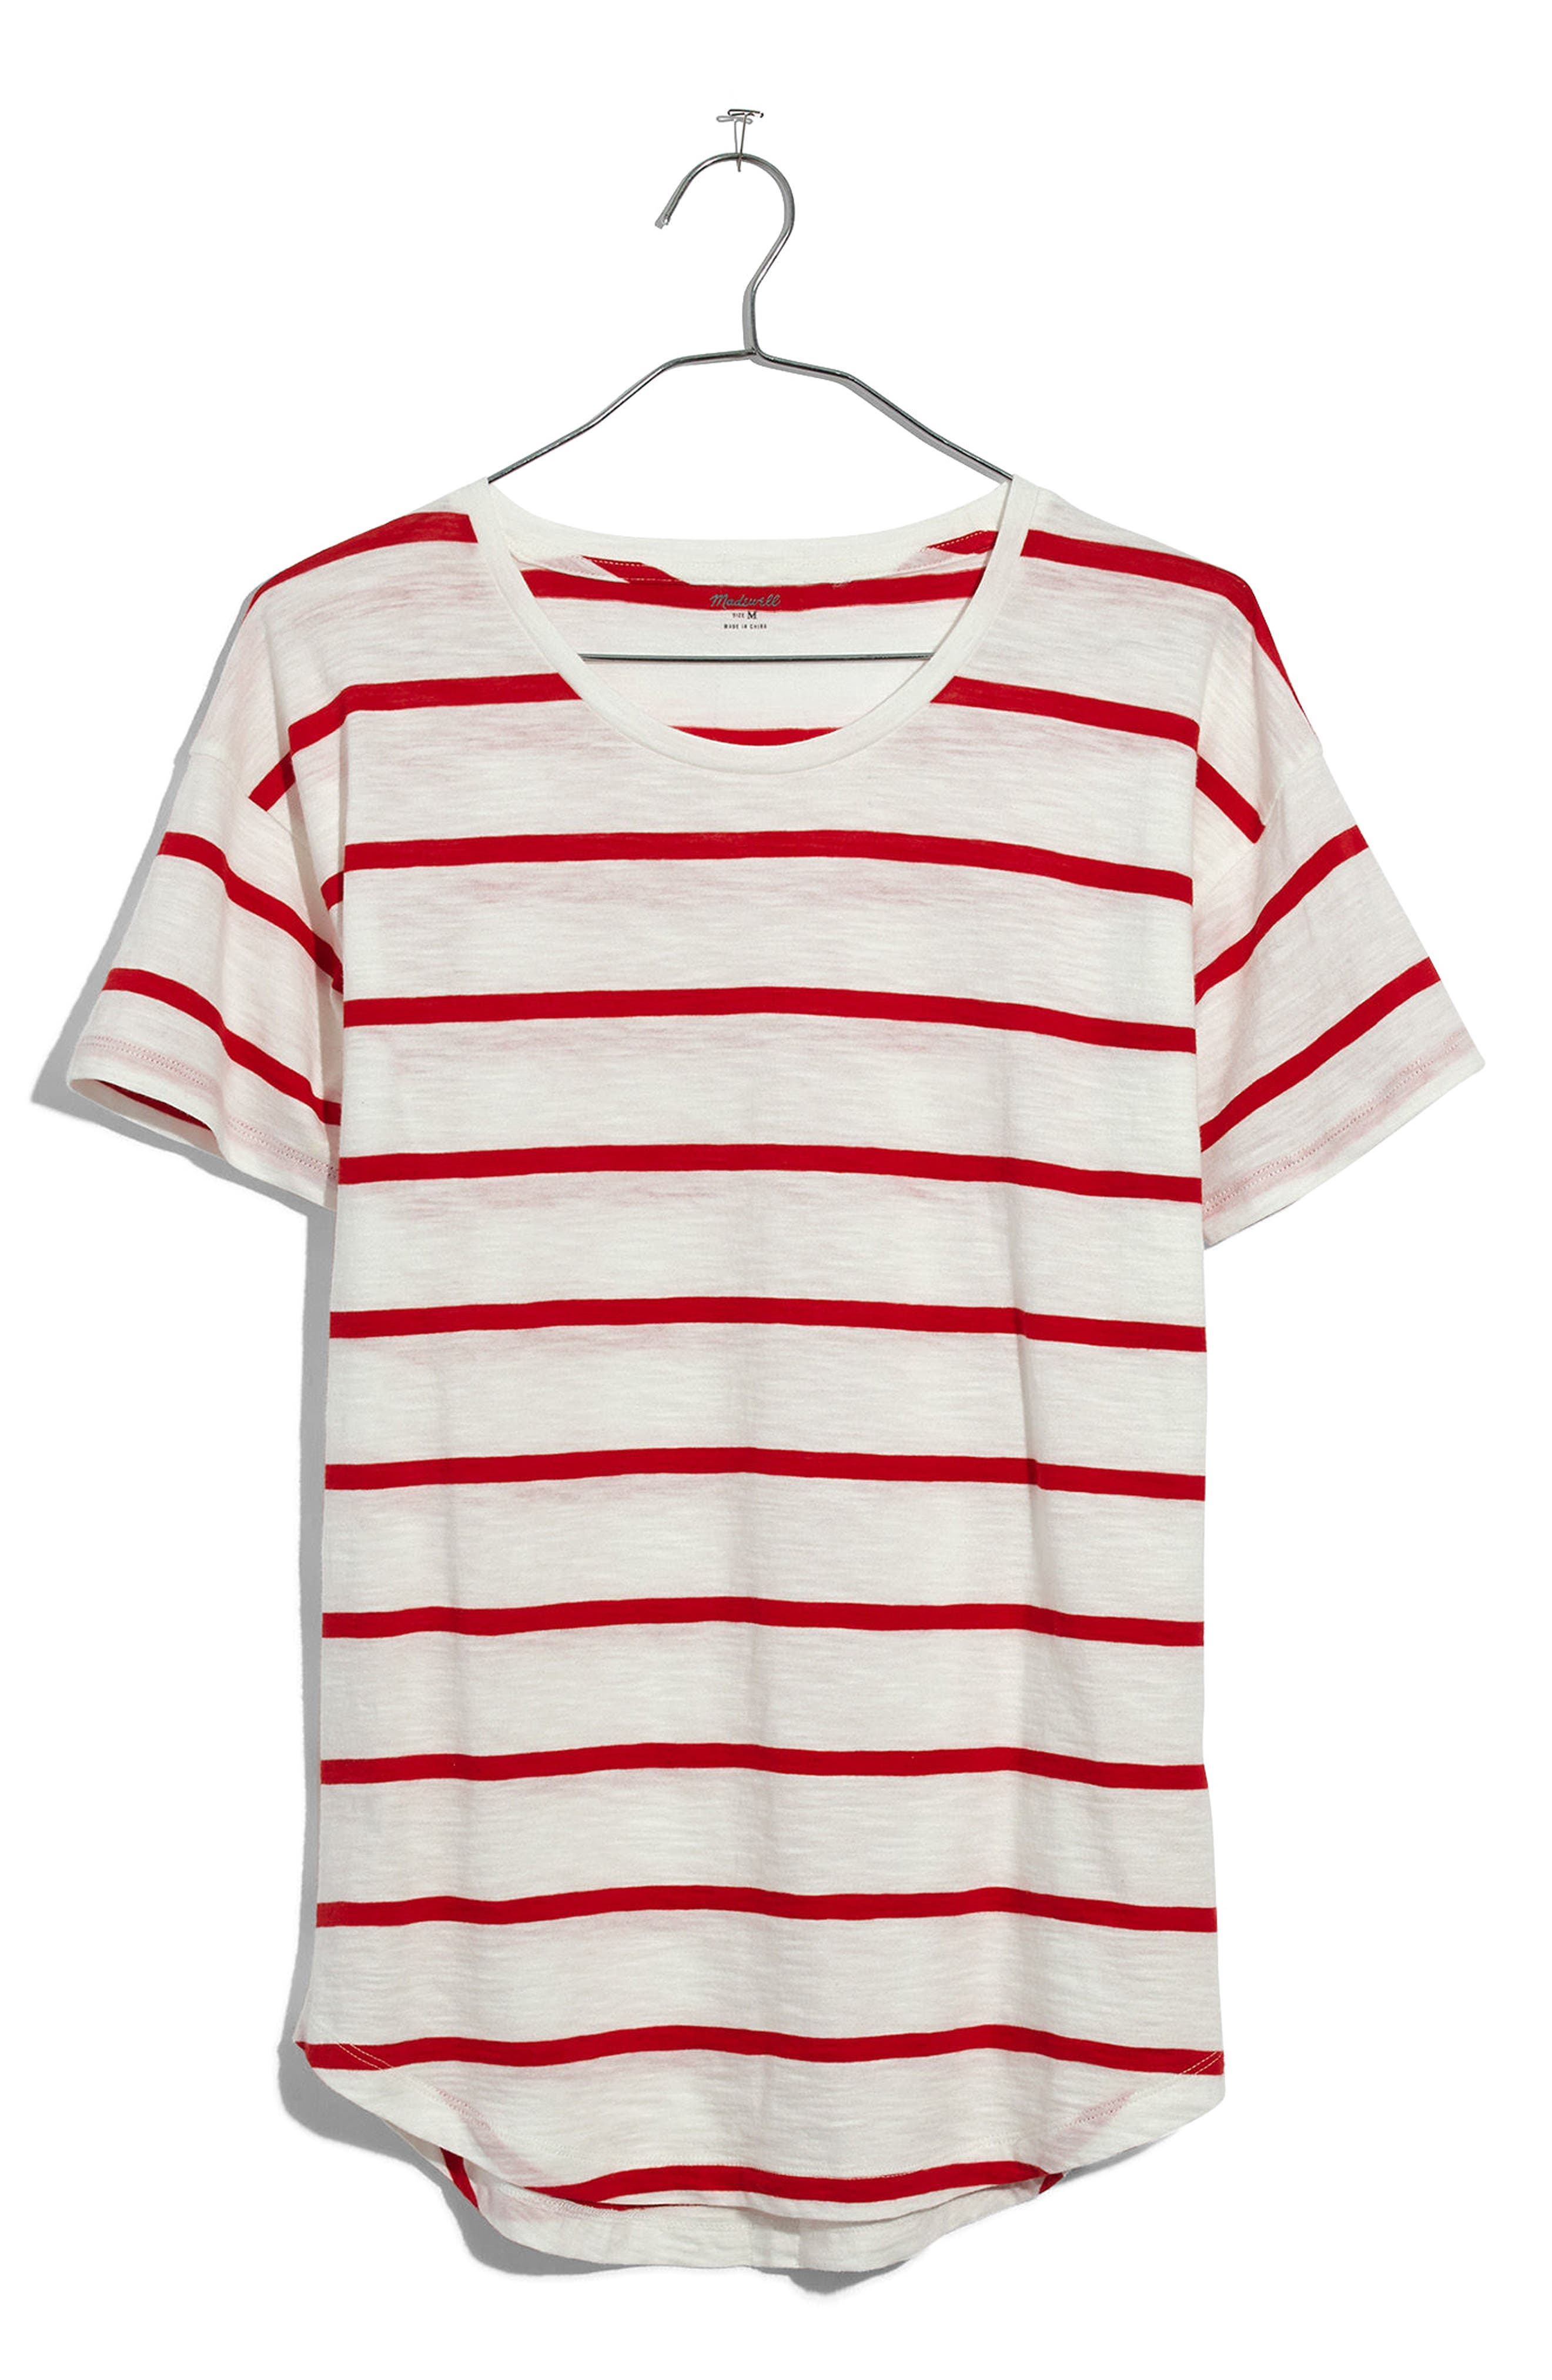 Whisper Cotton Crewneck Tee,                             Alternate thumbnail 3, color,                             BRIGHT IVORY/ RED